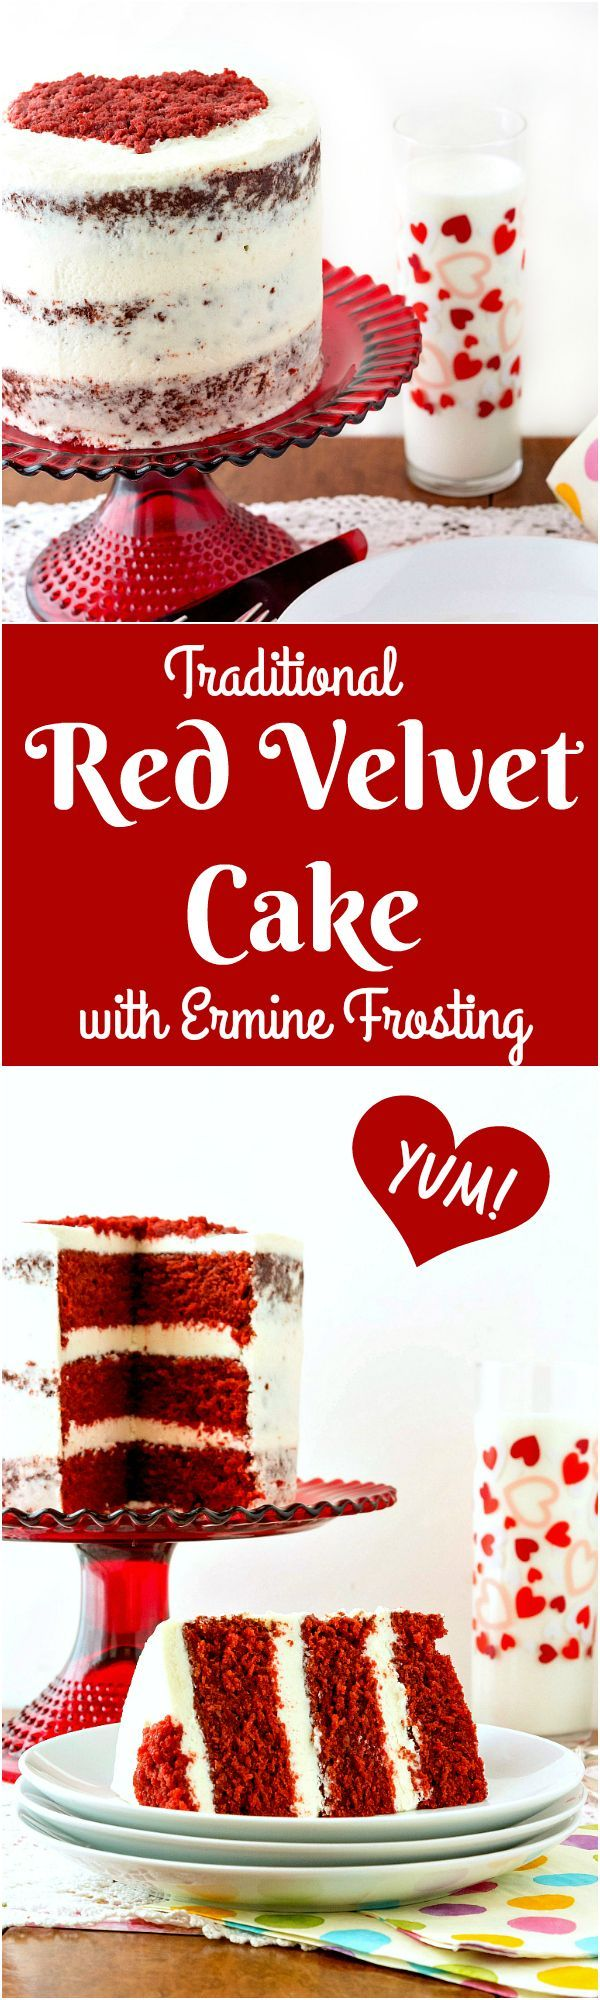 This traditional red velvet cake with ermine frosting is the perfect Valentine's Cake recipe. Make one for your sweetie. You'll love the smooth and creamy ermine frosting! | pastrychefonline.com